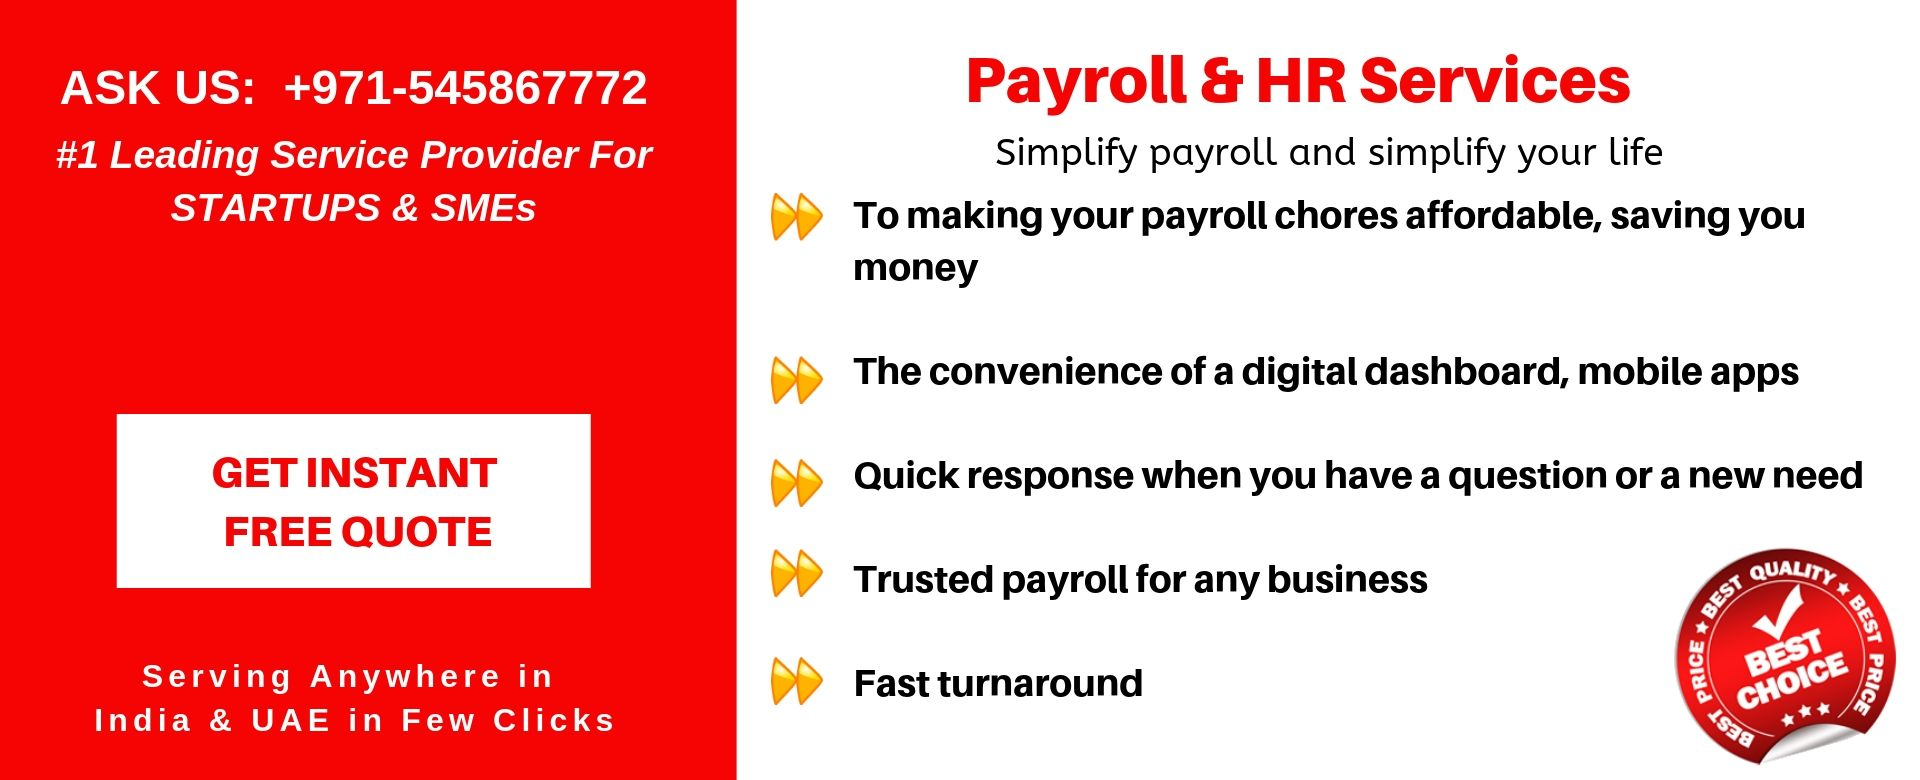 payroll hr services in uae